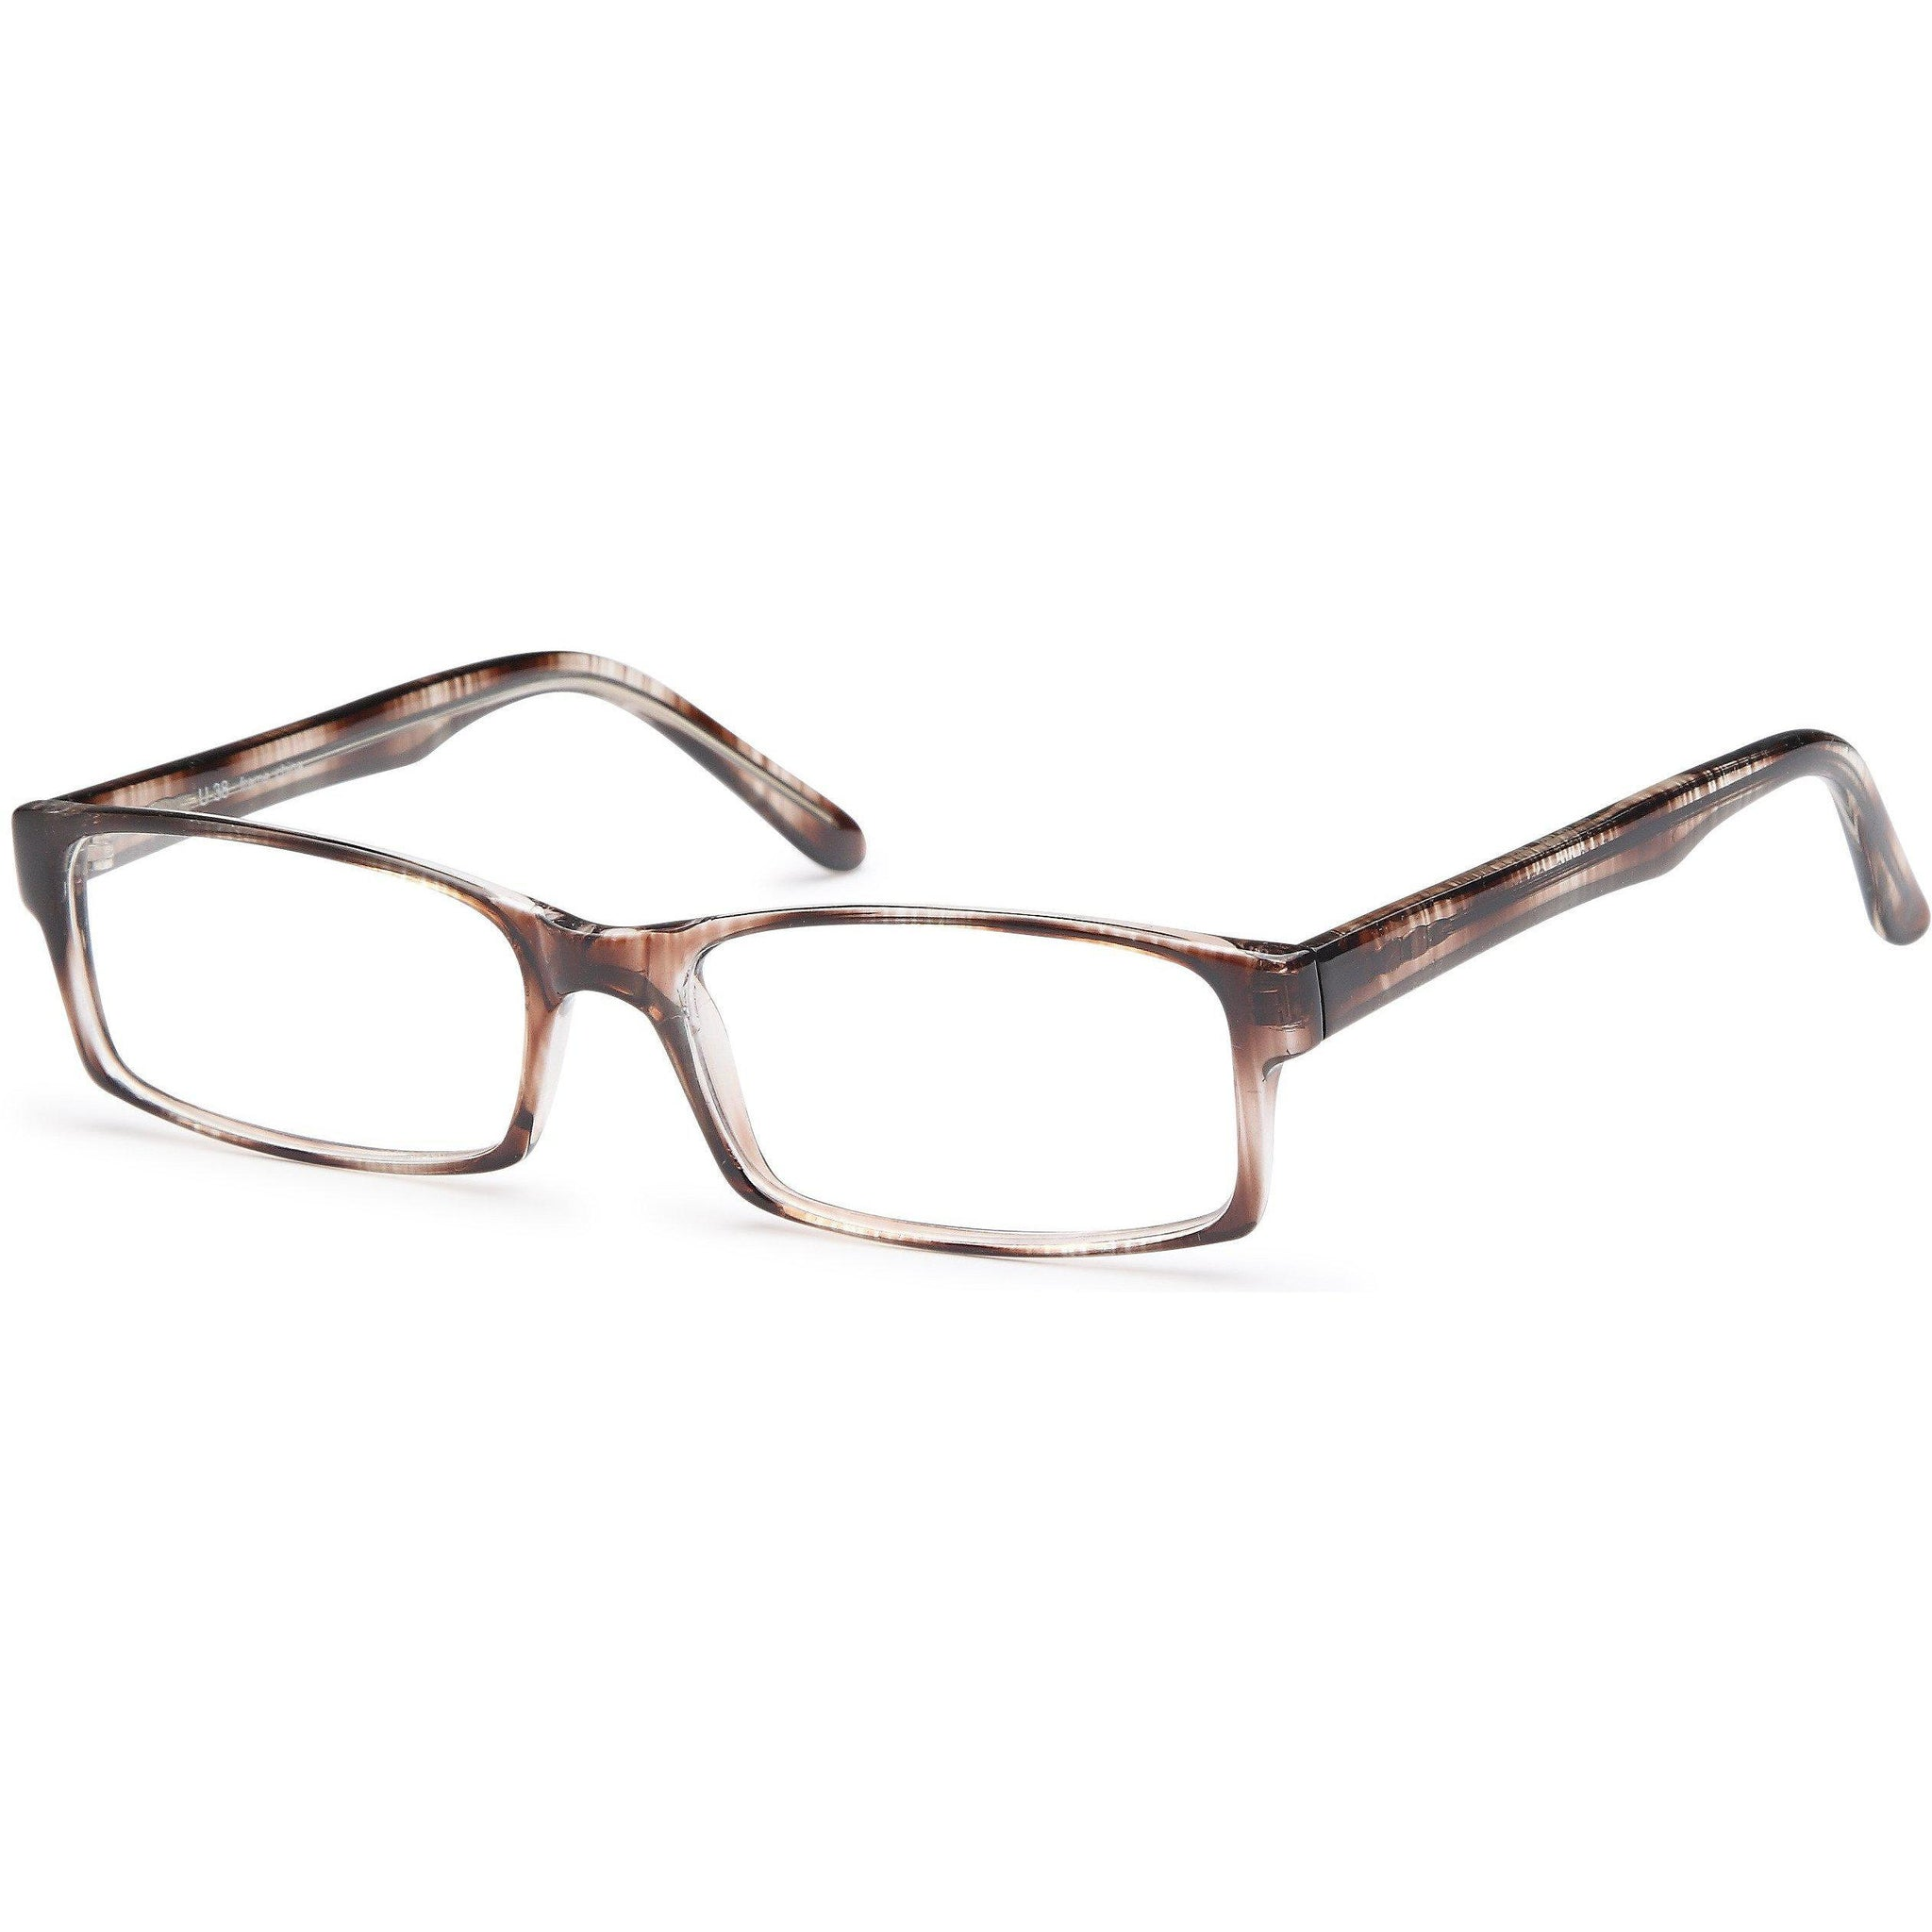 4U Prescription Glasses U 38 Optical Eyeglasses Frame - timetoshade